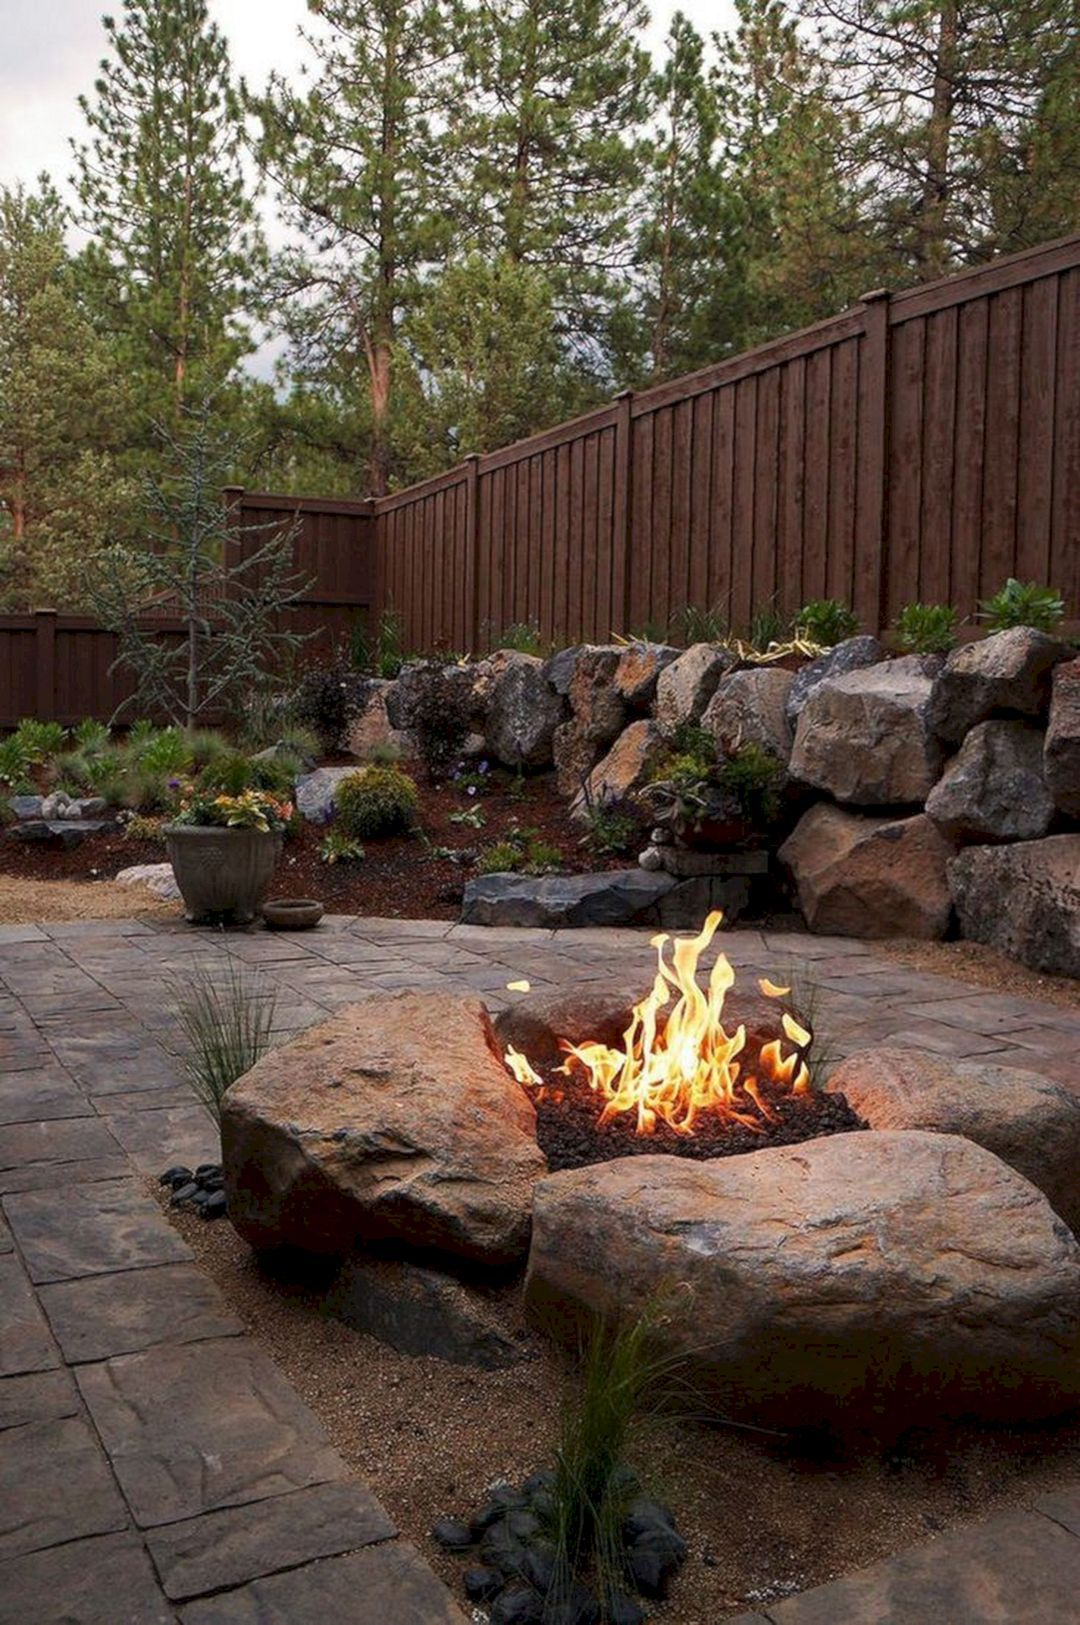 24 Easy And Diy Fire Pit Design For Warm Backyard Ideas